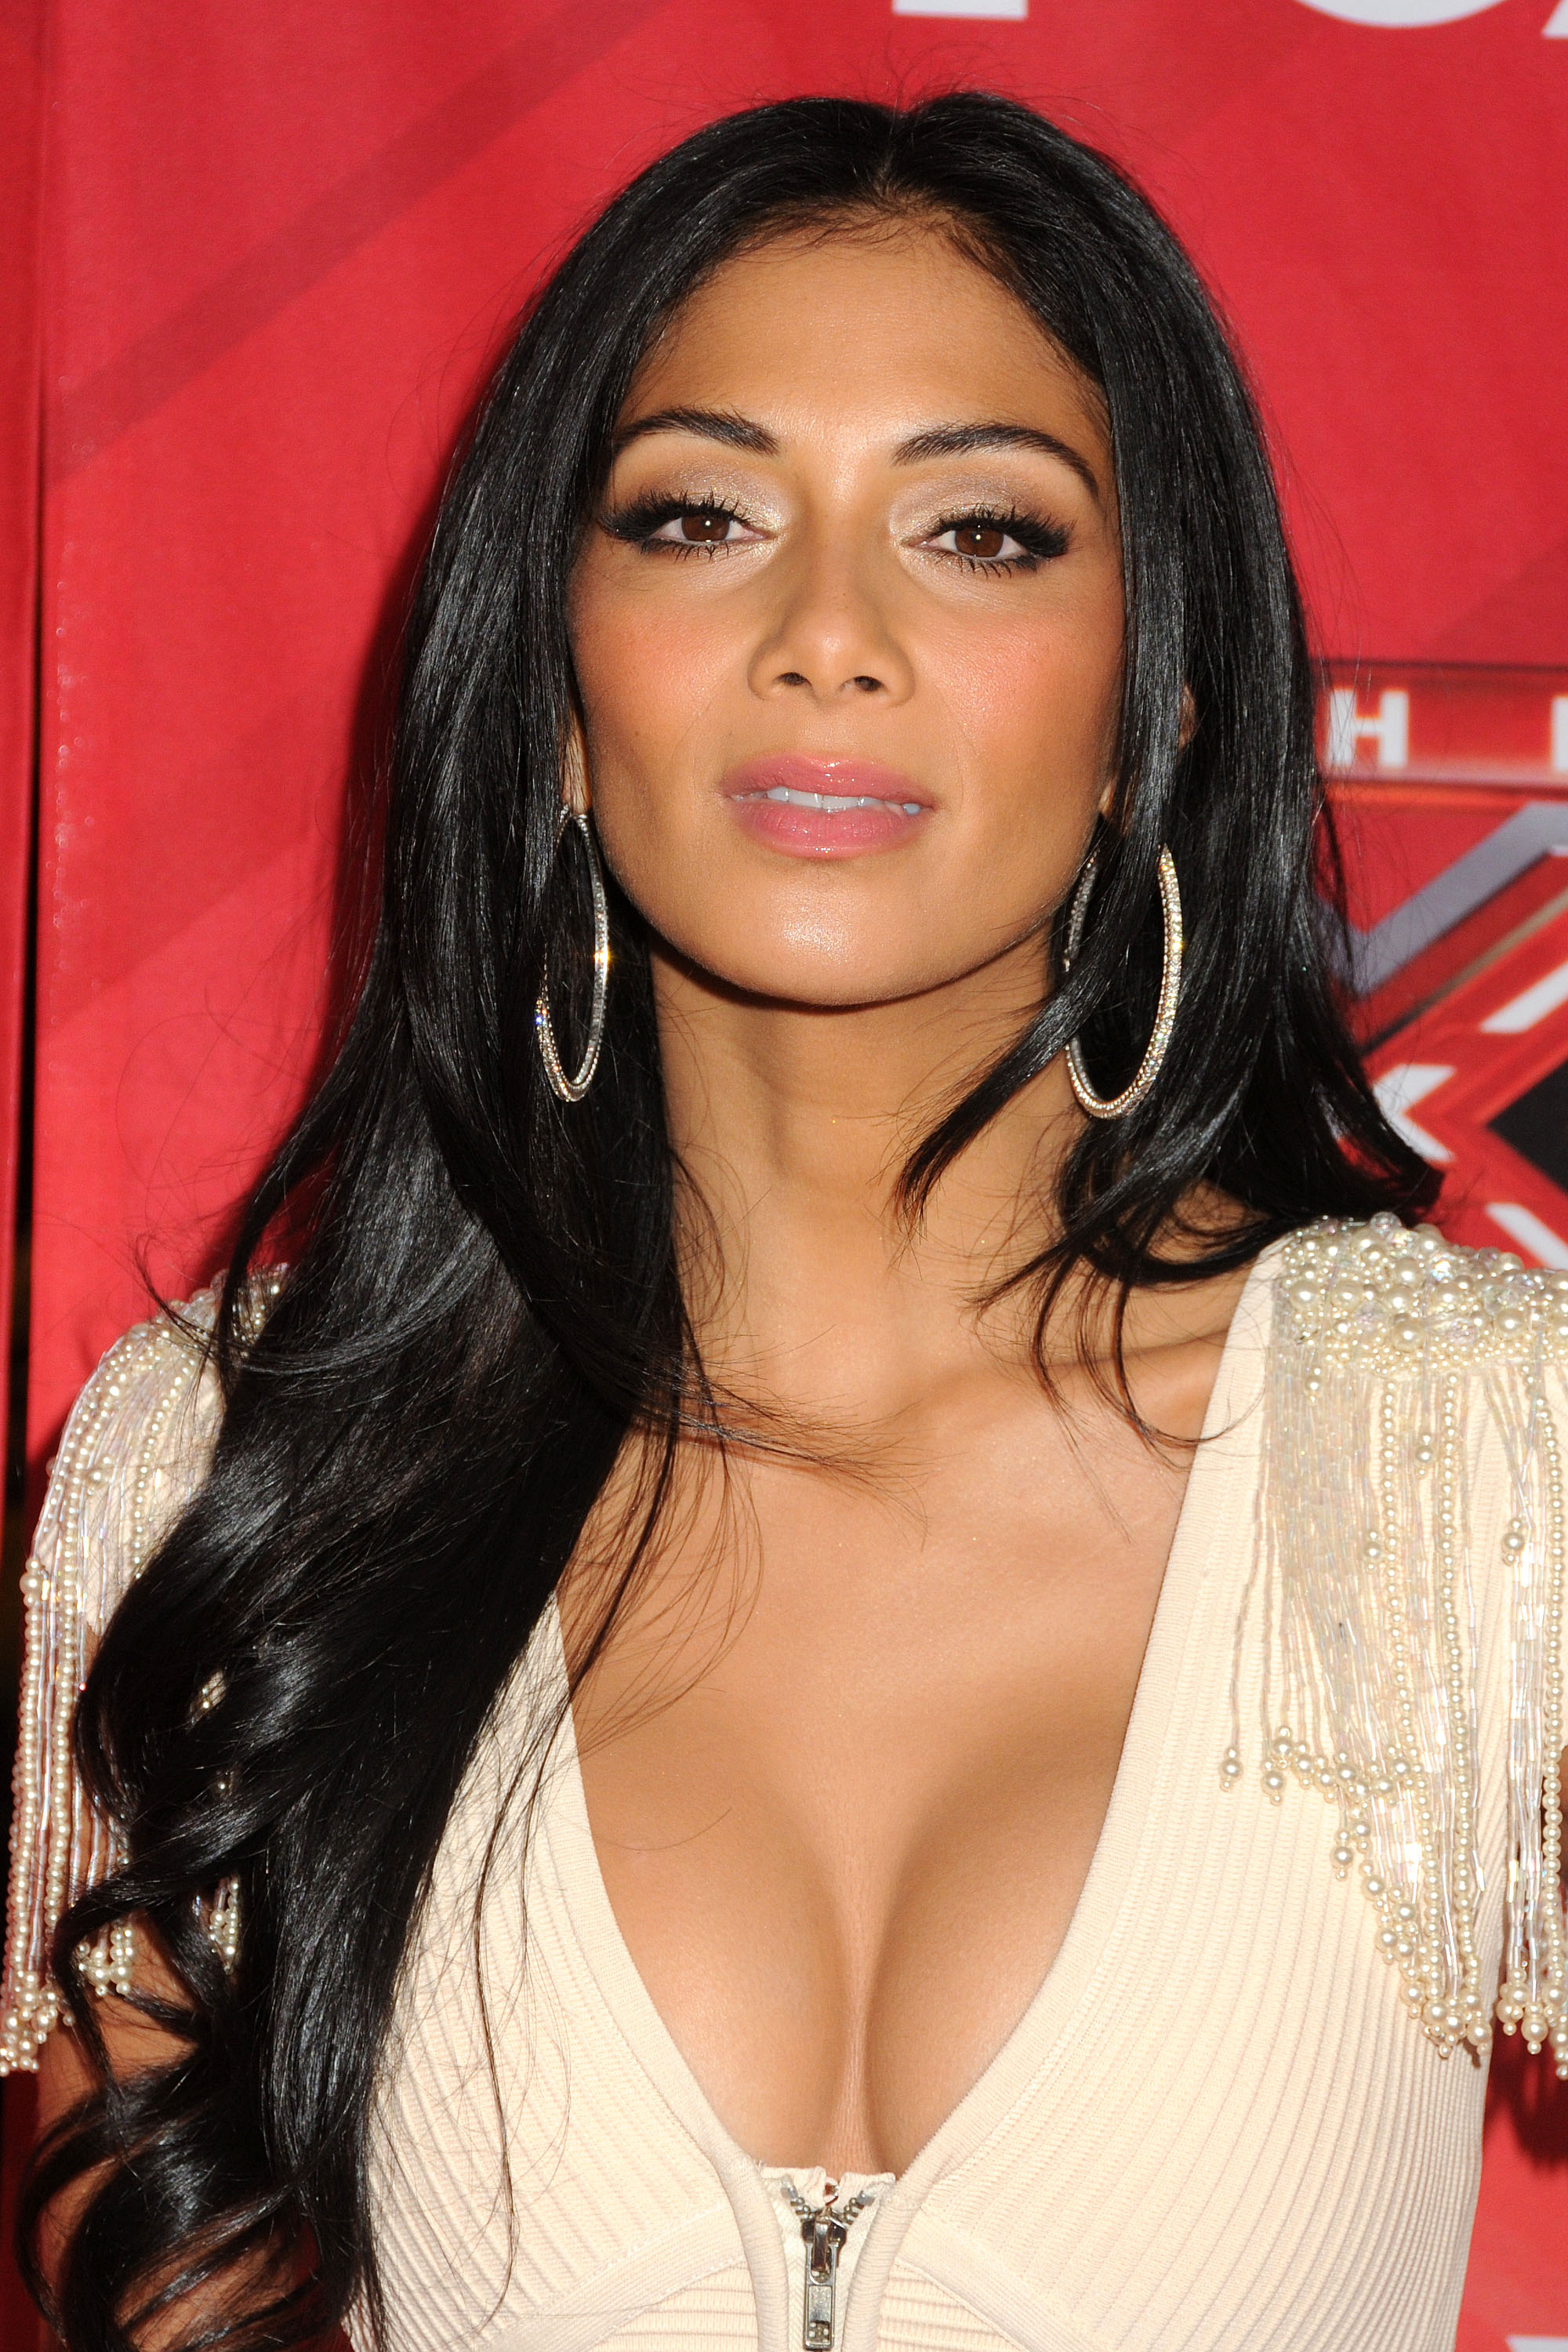 Nicole Scherzinger of the Pussycat Dolls sheds some real ...